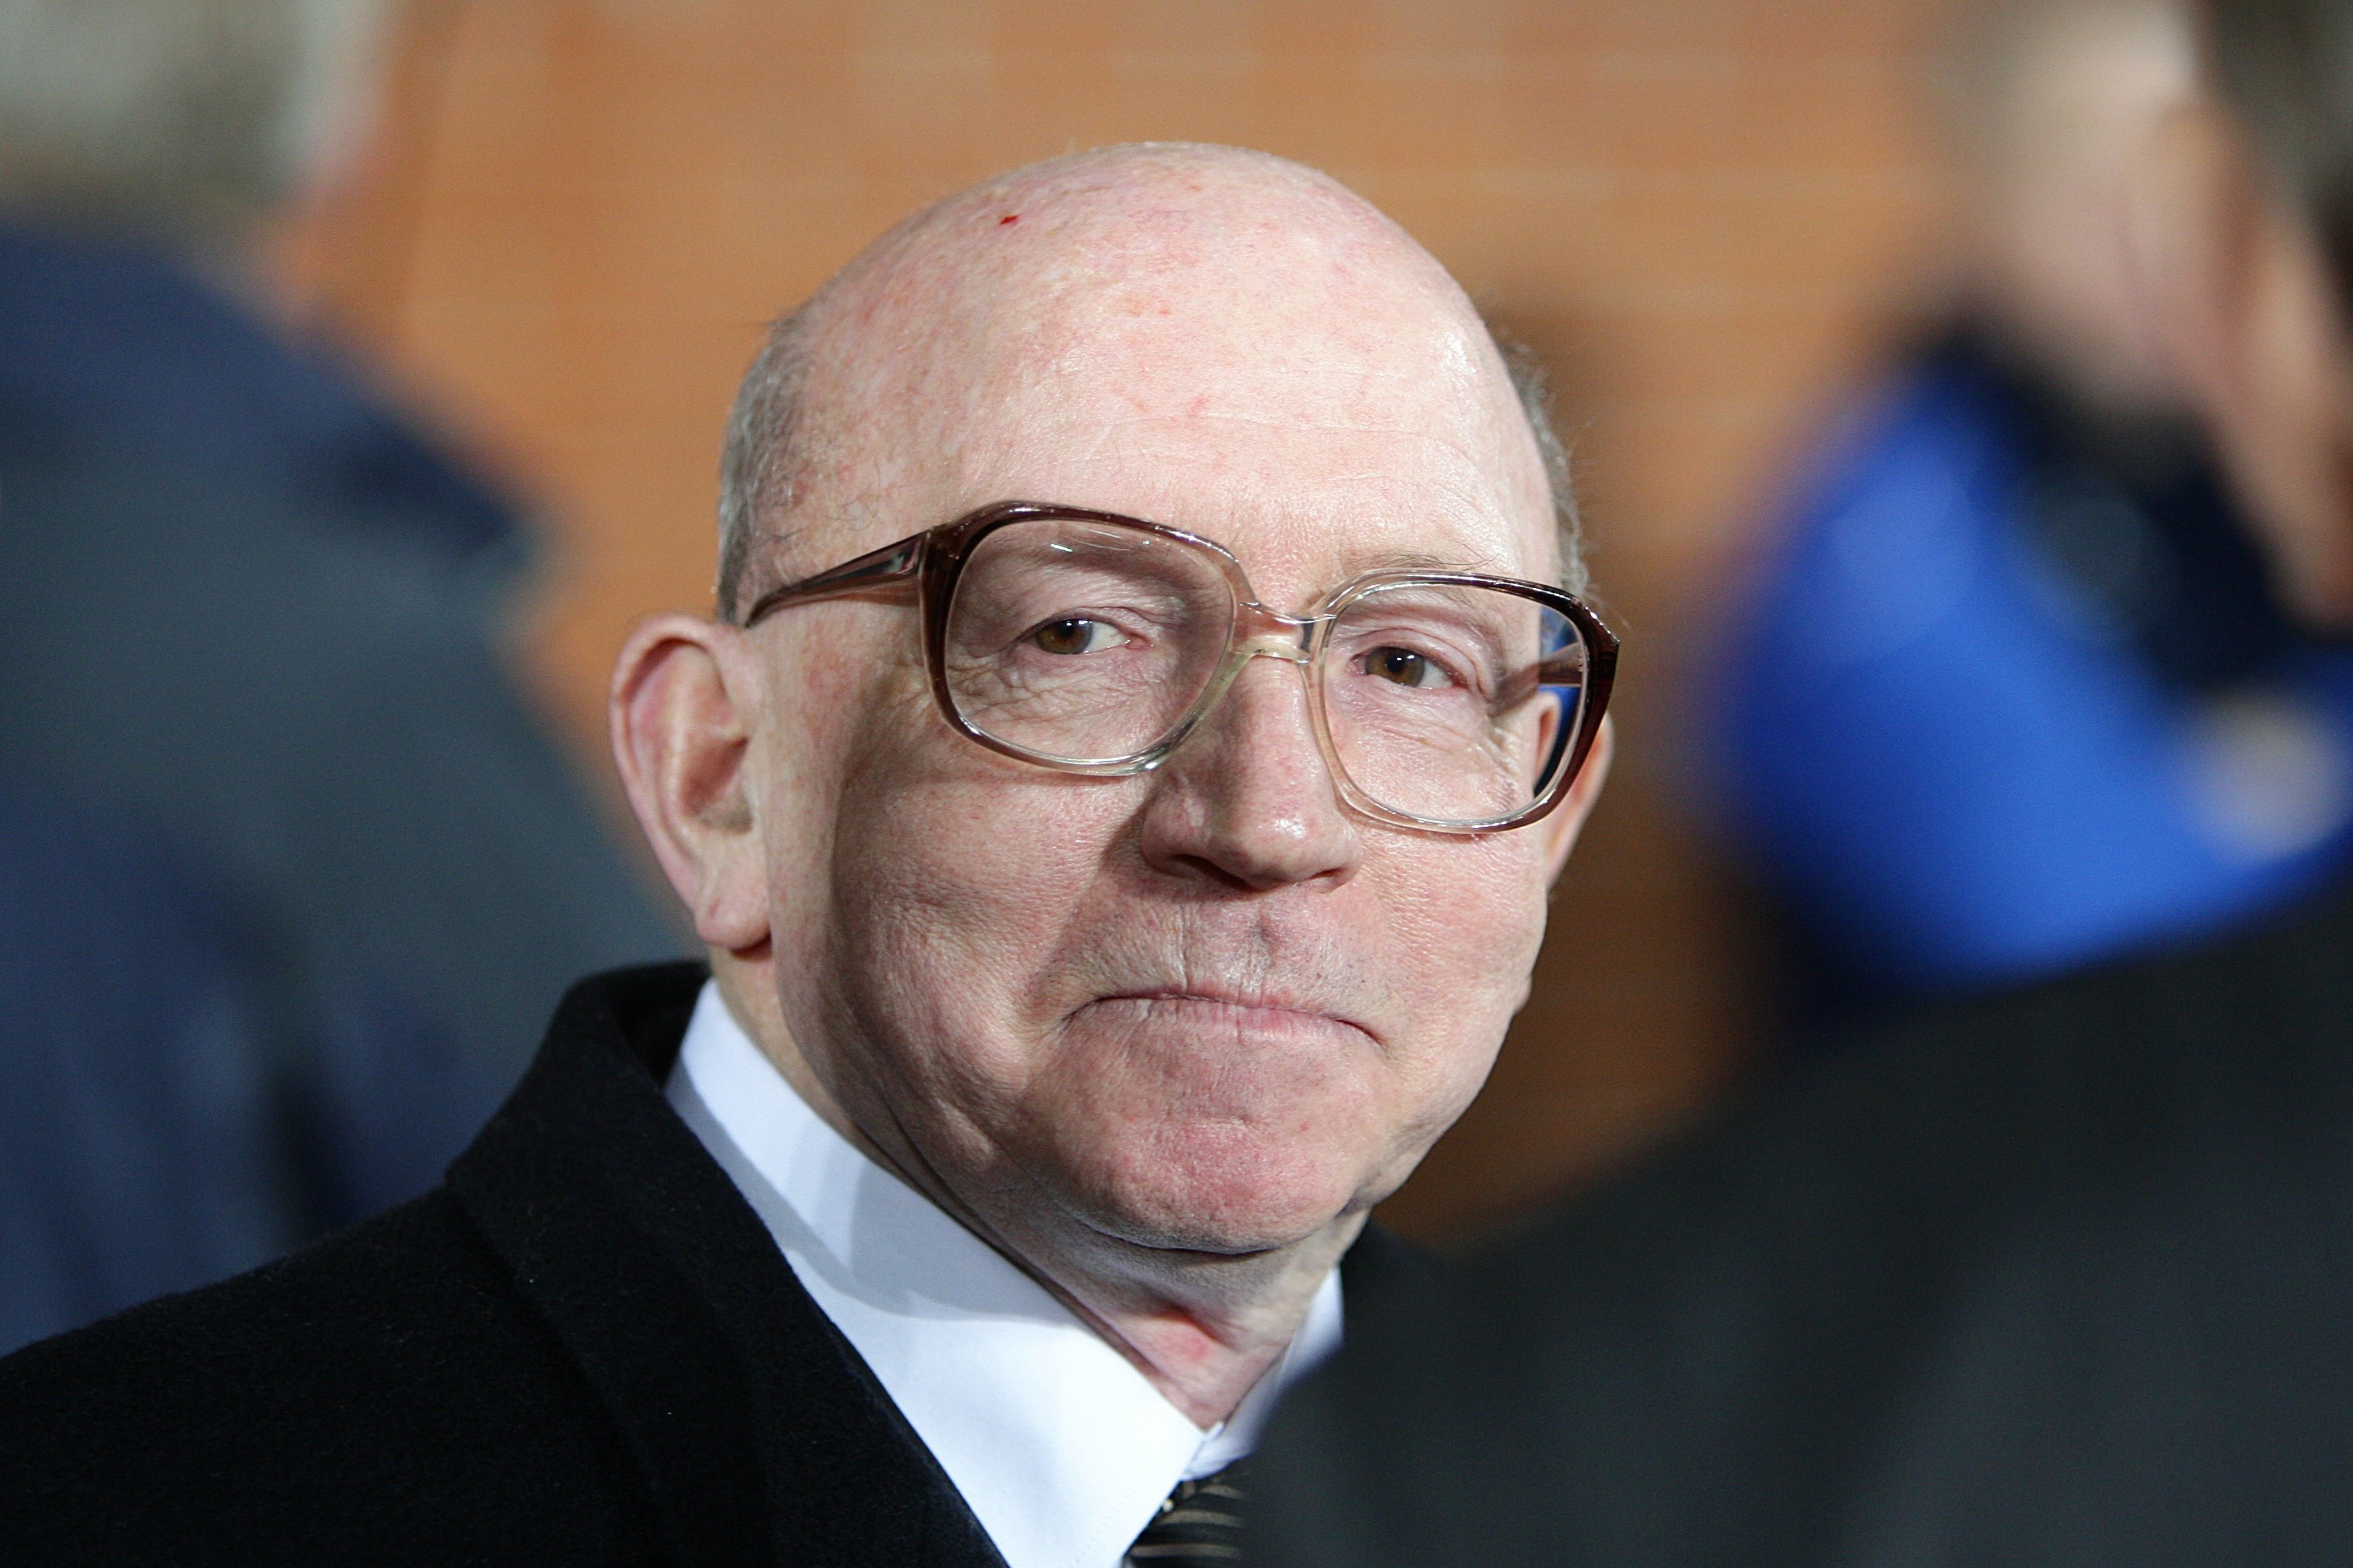 Phil Neville hails Nobby Stiles as a 'giant of the game' in personal tribute